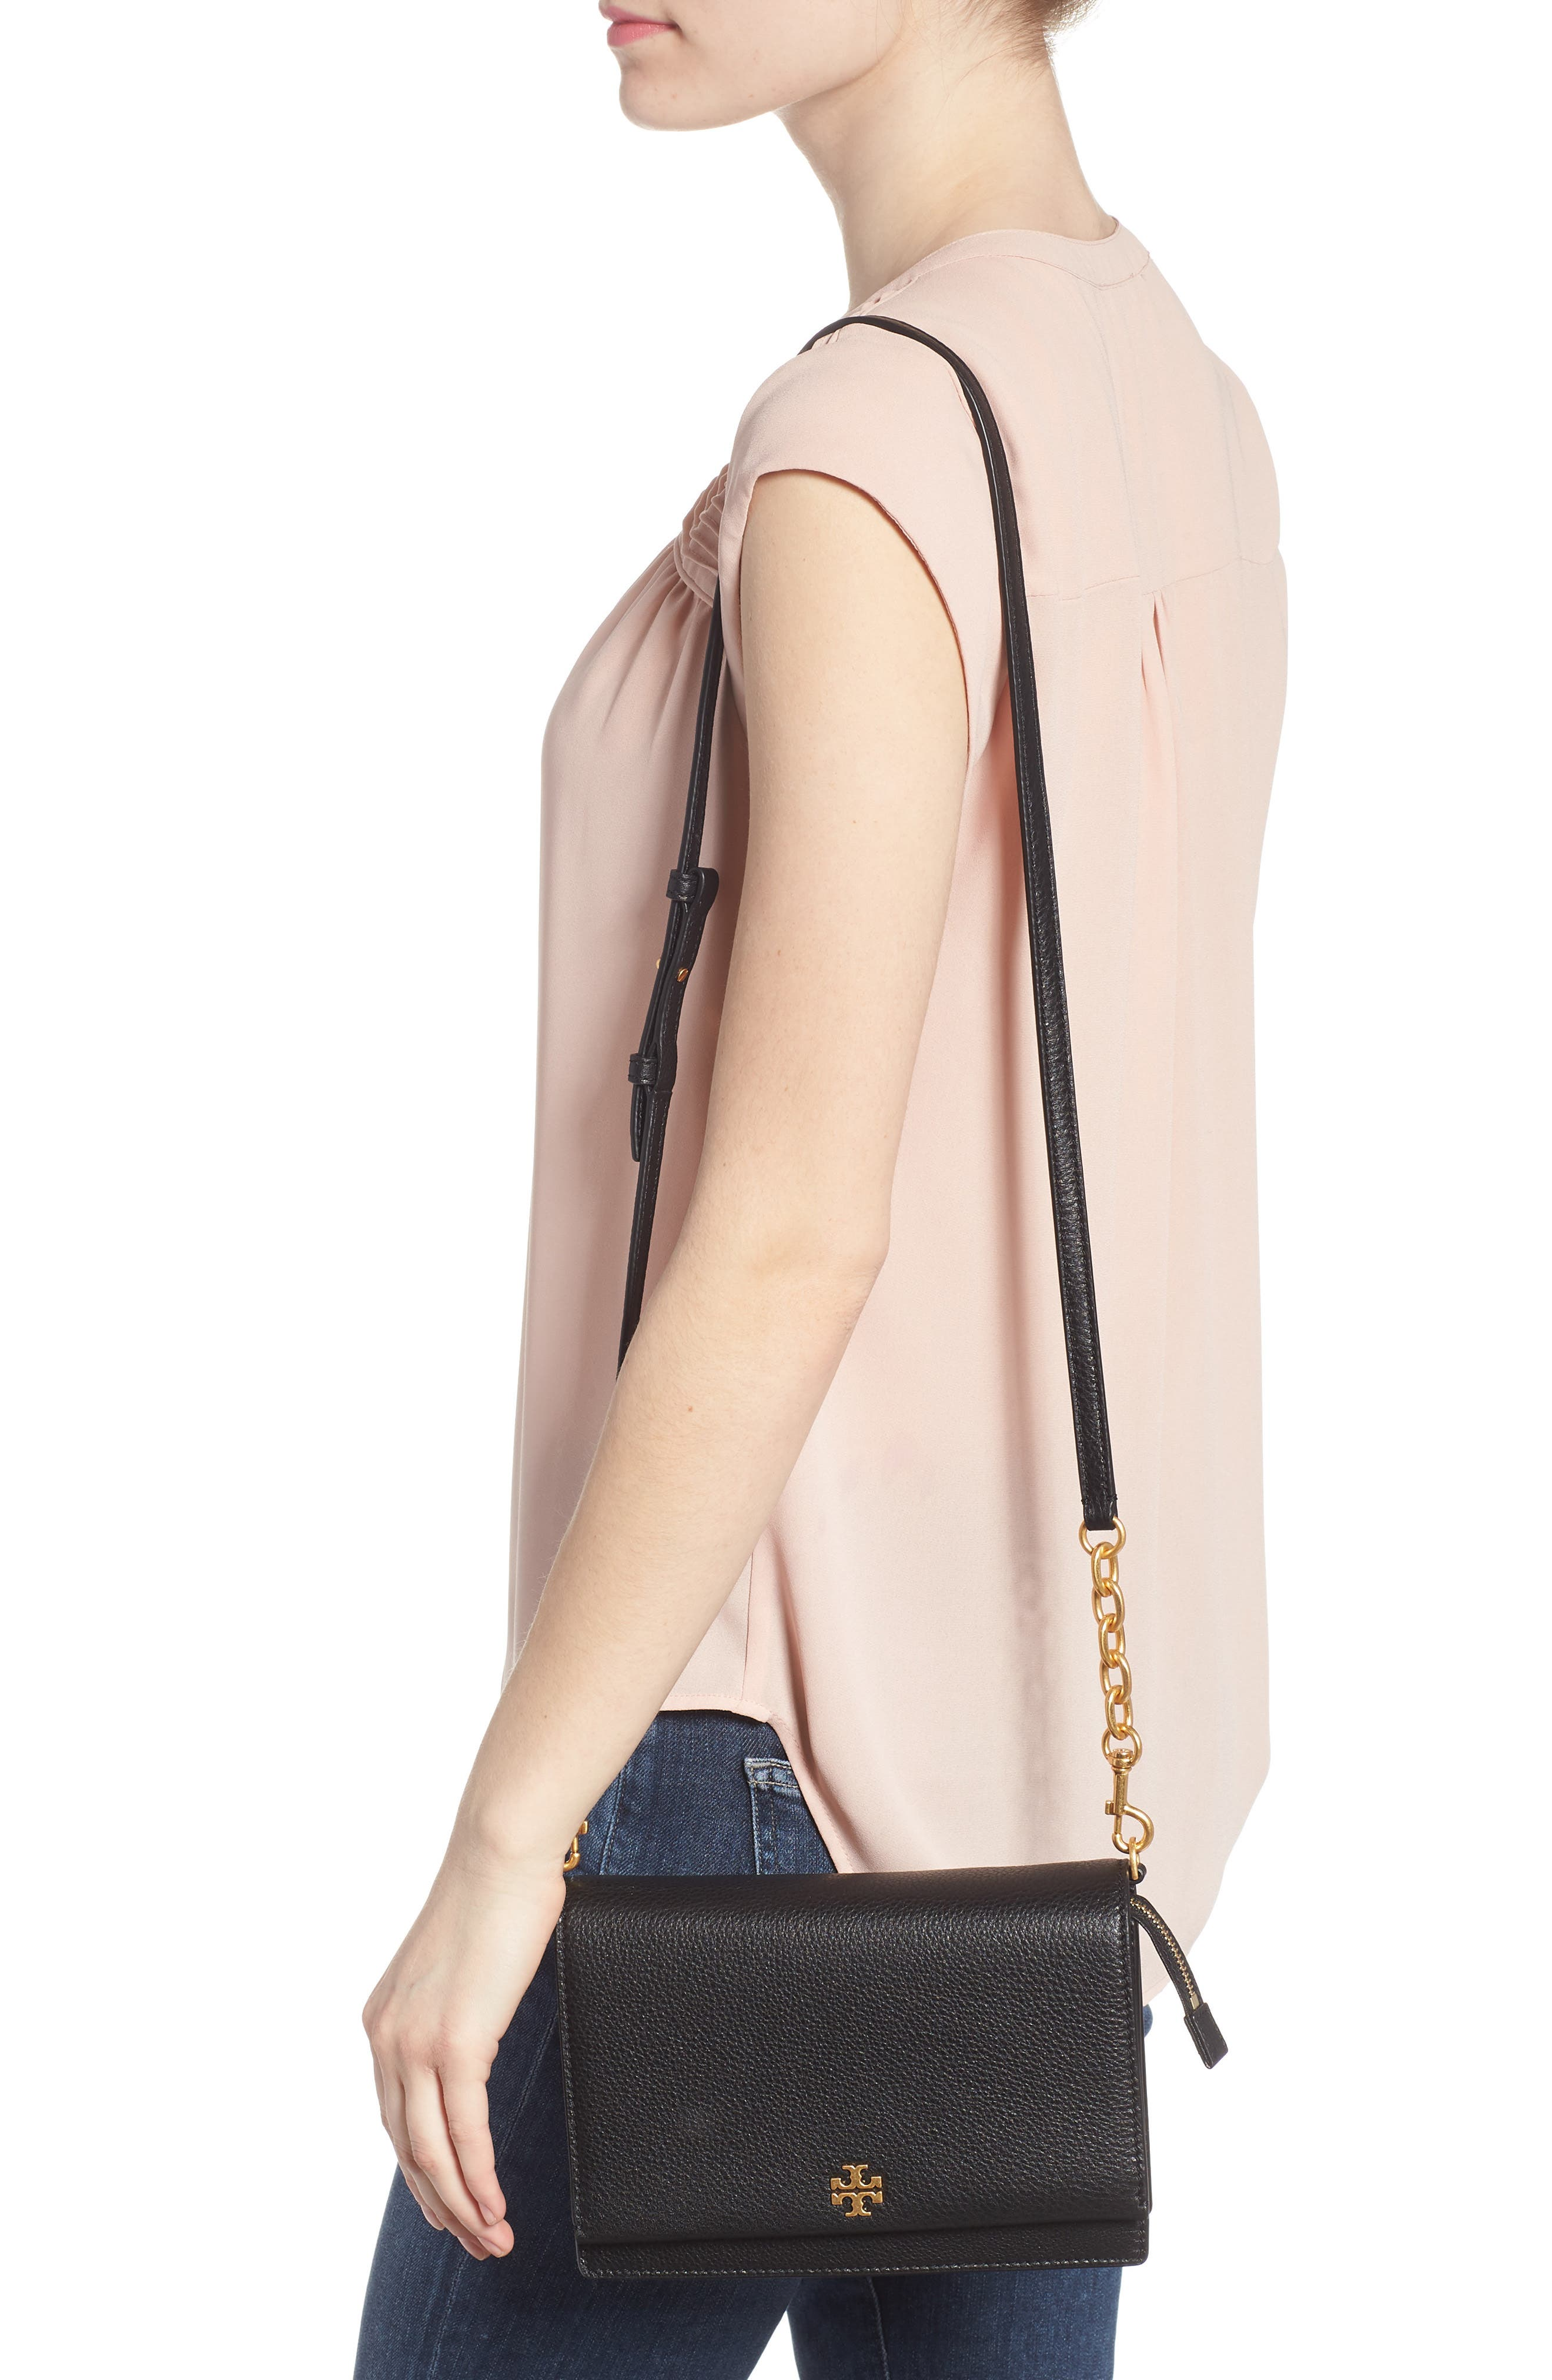 Georgia Pebble Leather Shoulder Bag,                             Alternate thumbnail 2, color,                             001